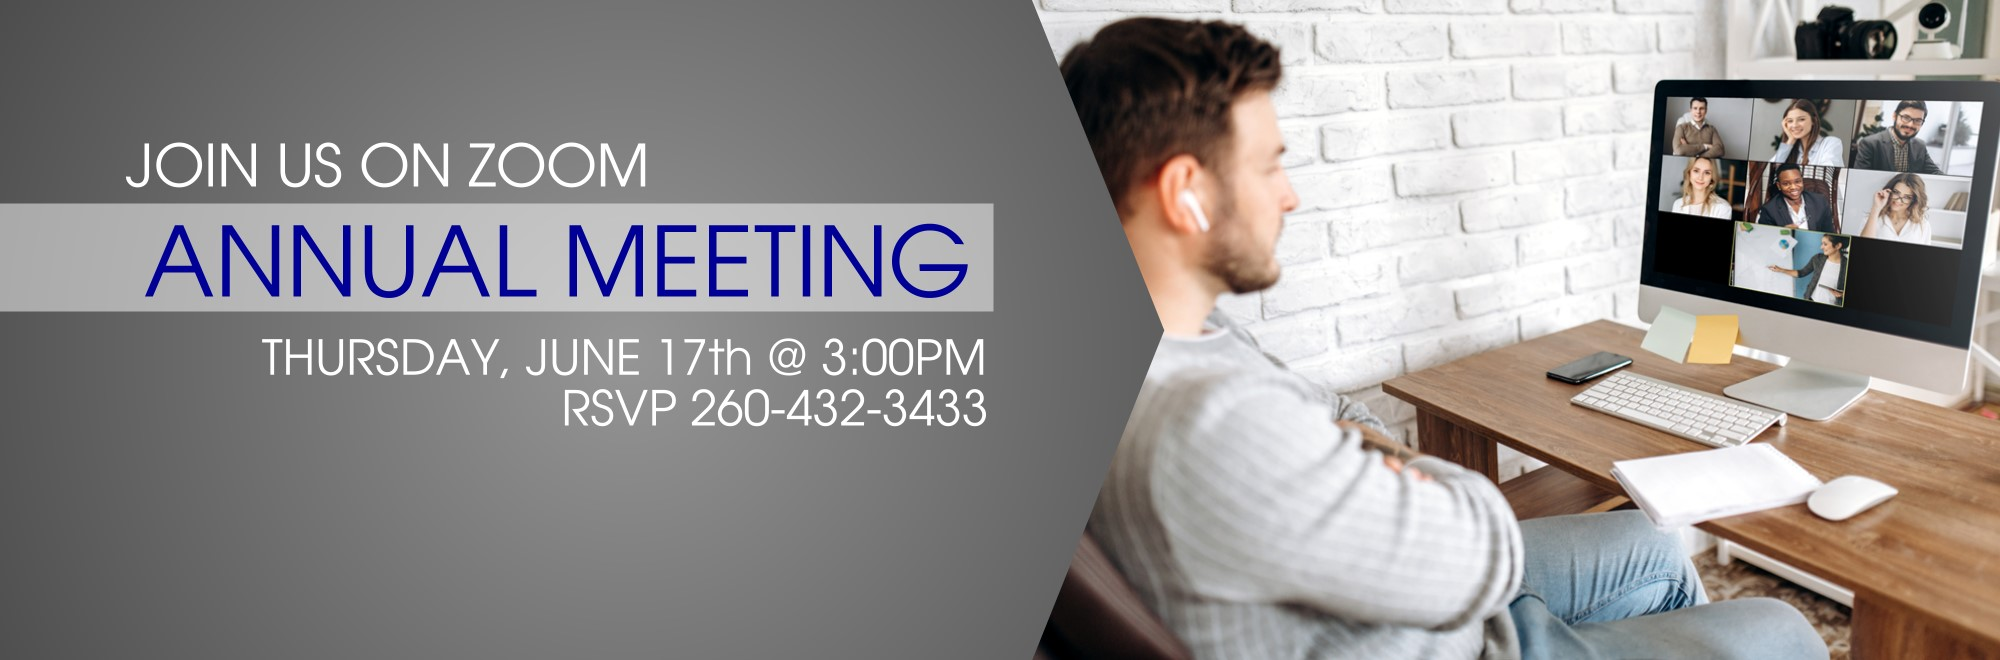 Annual Meeting- Join us on ZOOM. Thursday, July 17th @ 3:00PM.  RSVP 260-432-3433